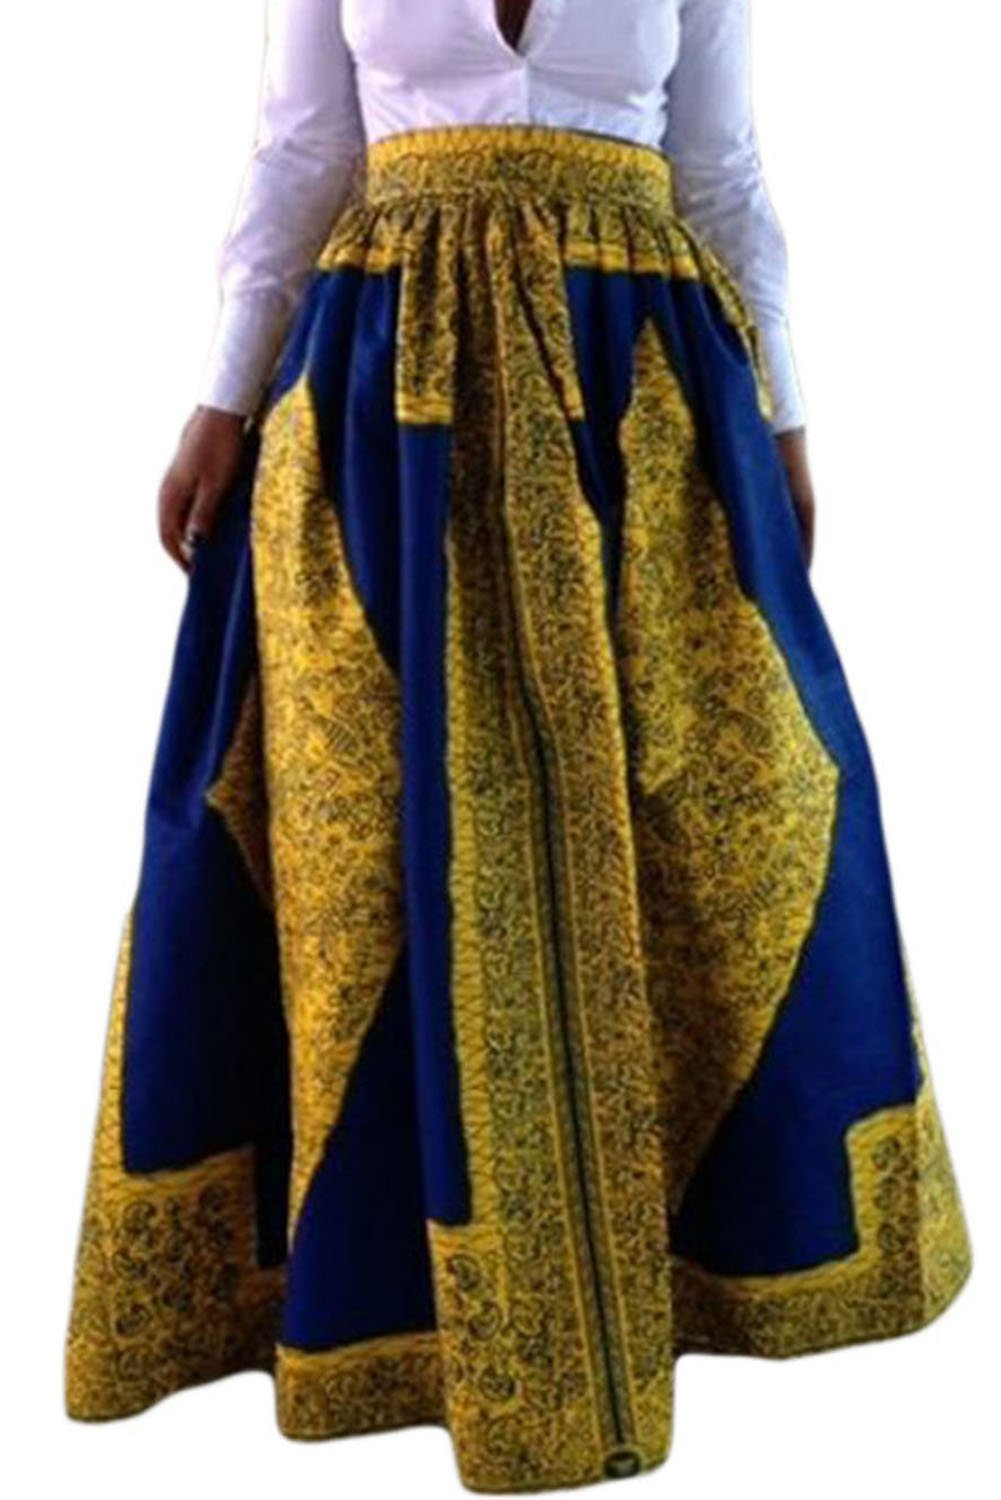 Dearlovers Beach Skirt Casual Traditional African Print Maxi Skirts Medium Yellow